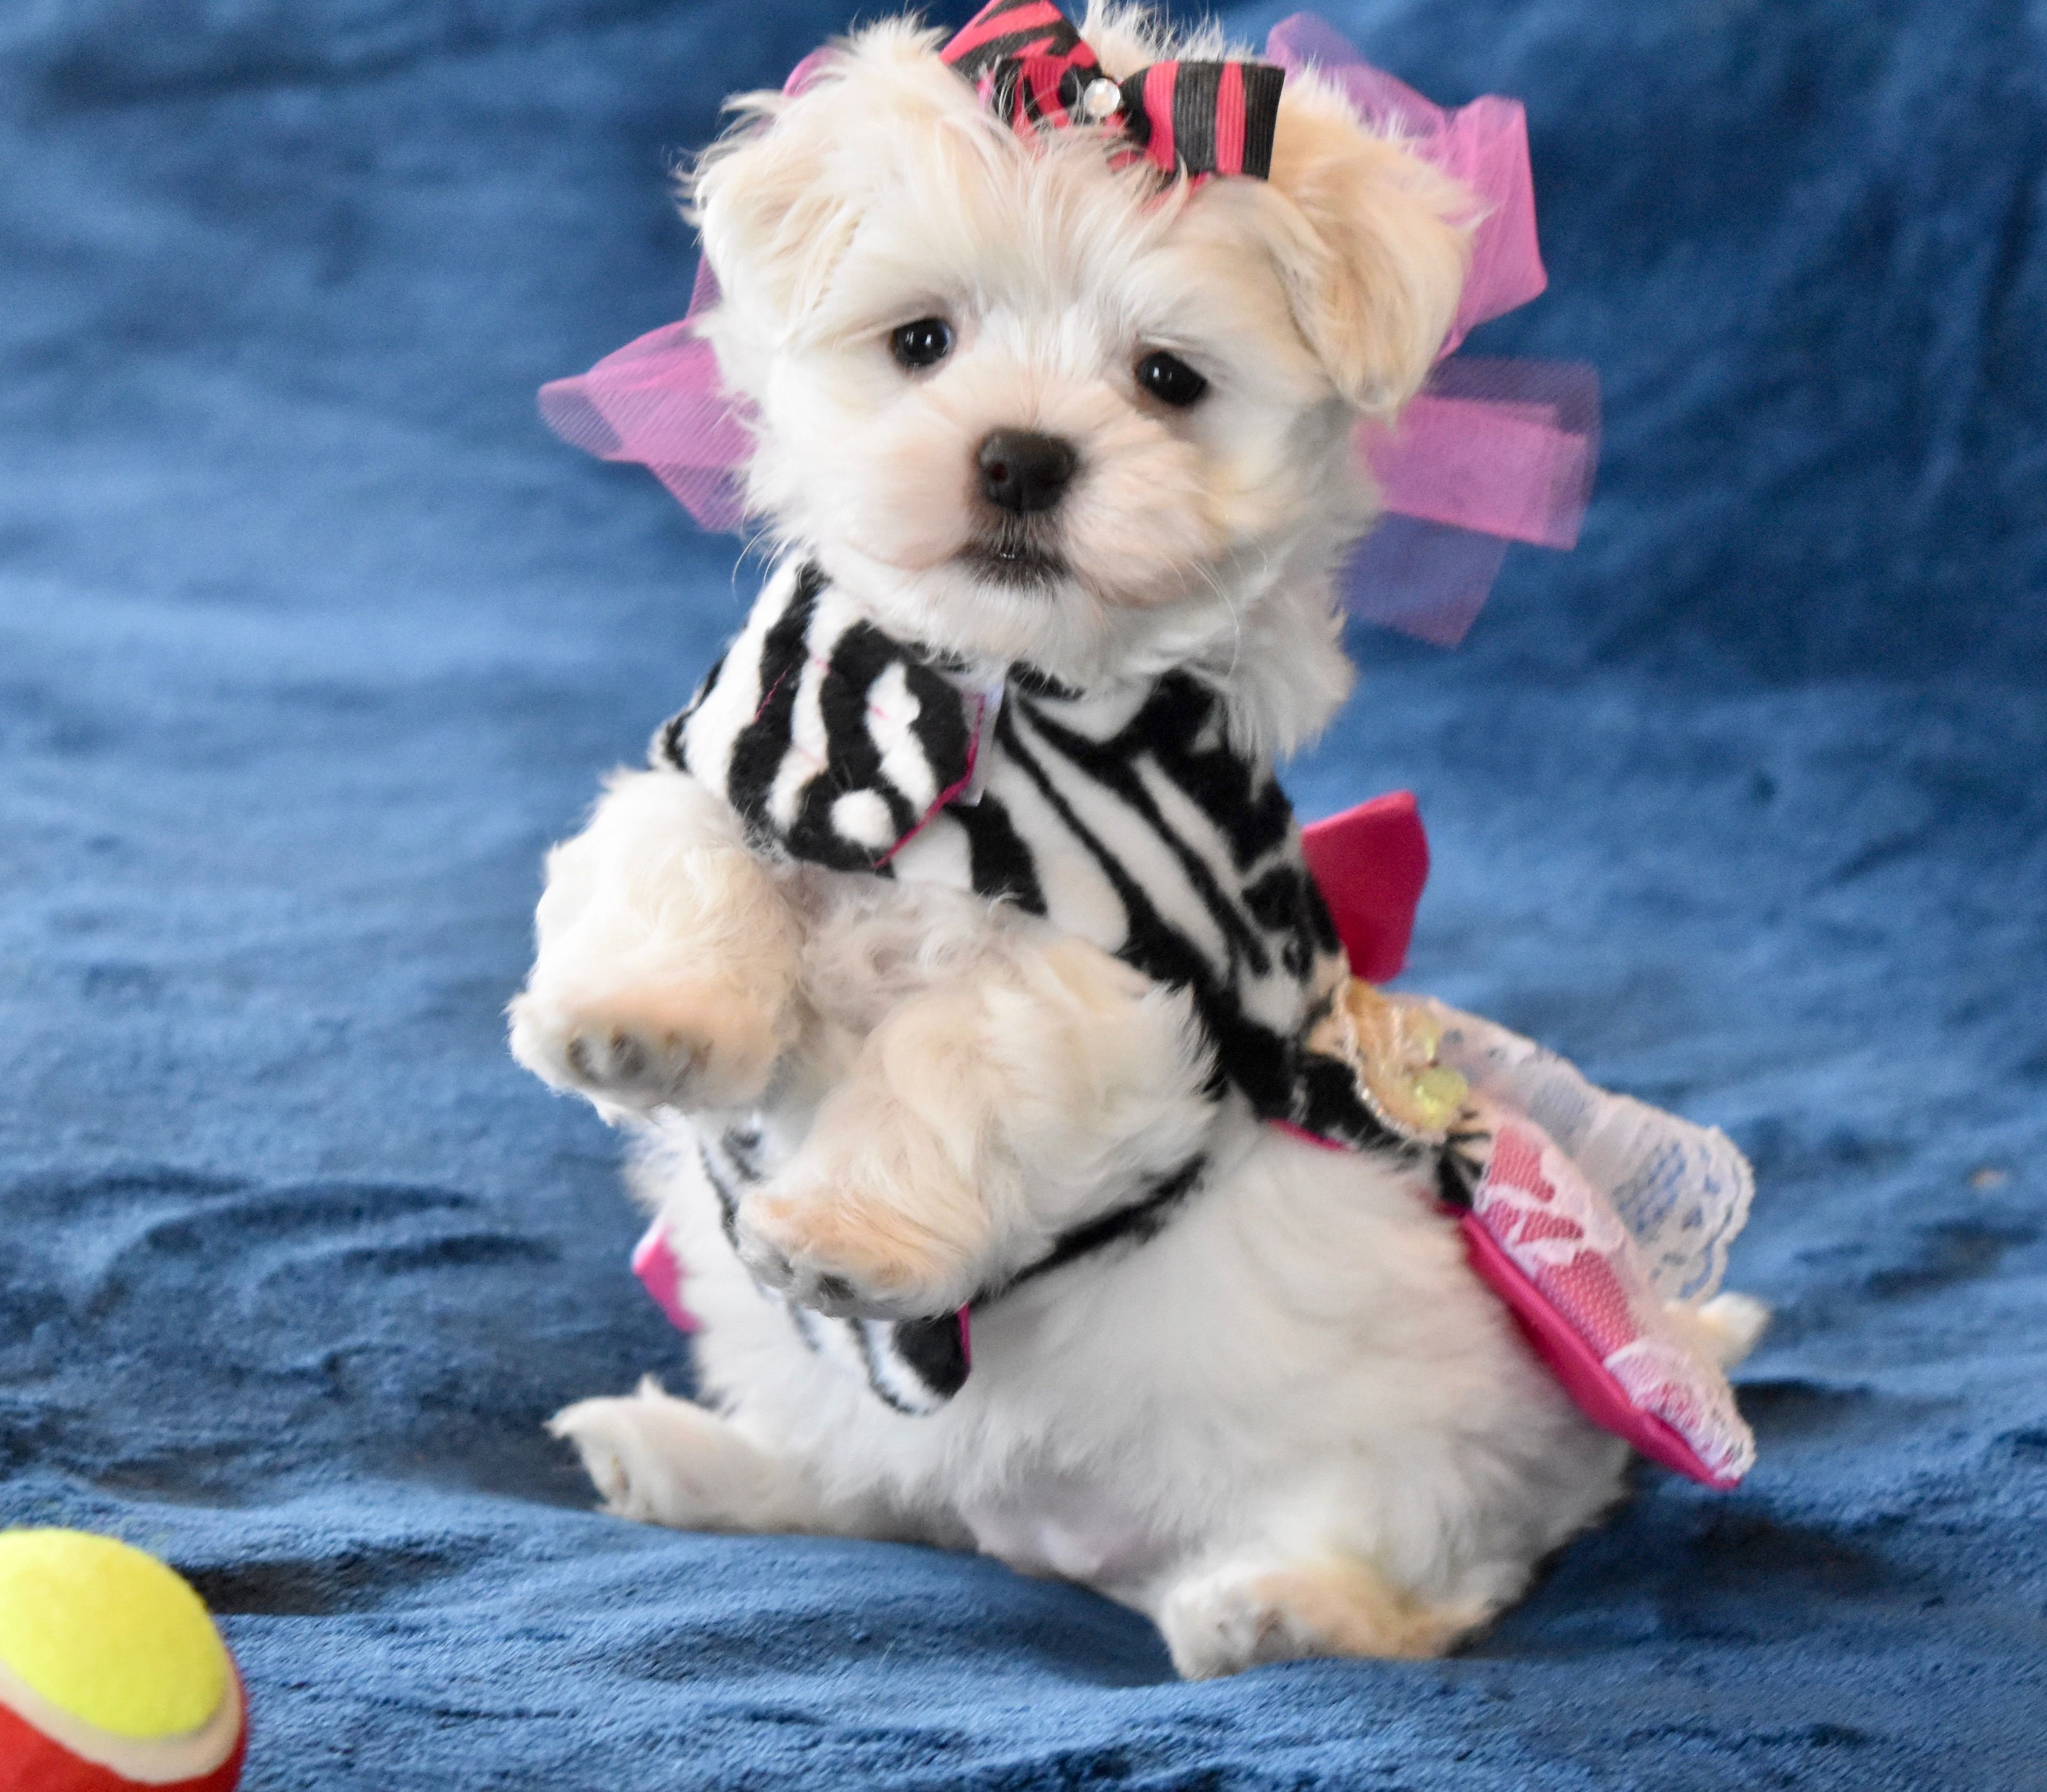 Www Texasteacuppuppy Comthis Is Baby Maltese Girl Posh Located In The Dallas Texas Area Baby Maltese Maltipoo Puppy Yorkie